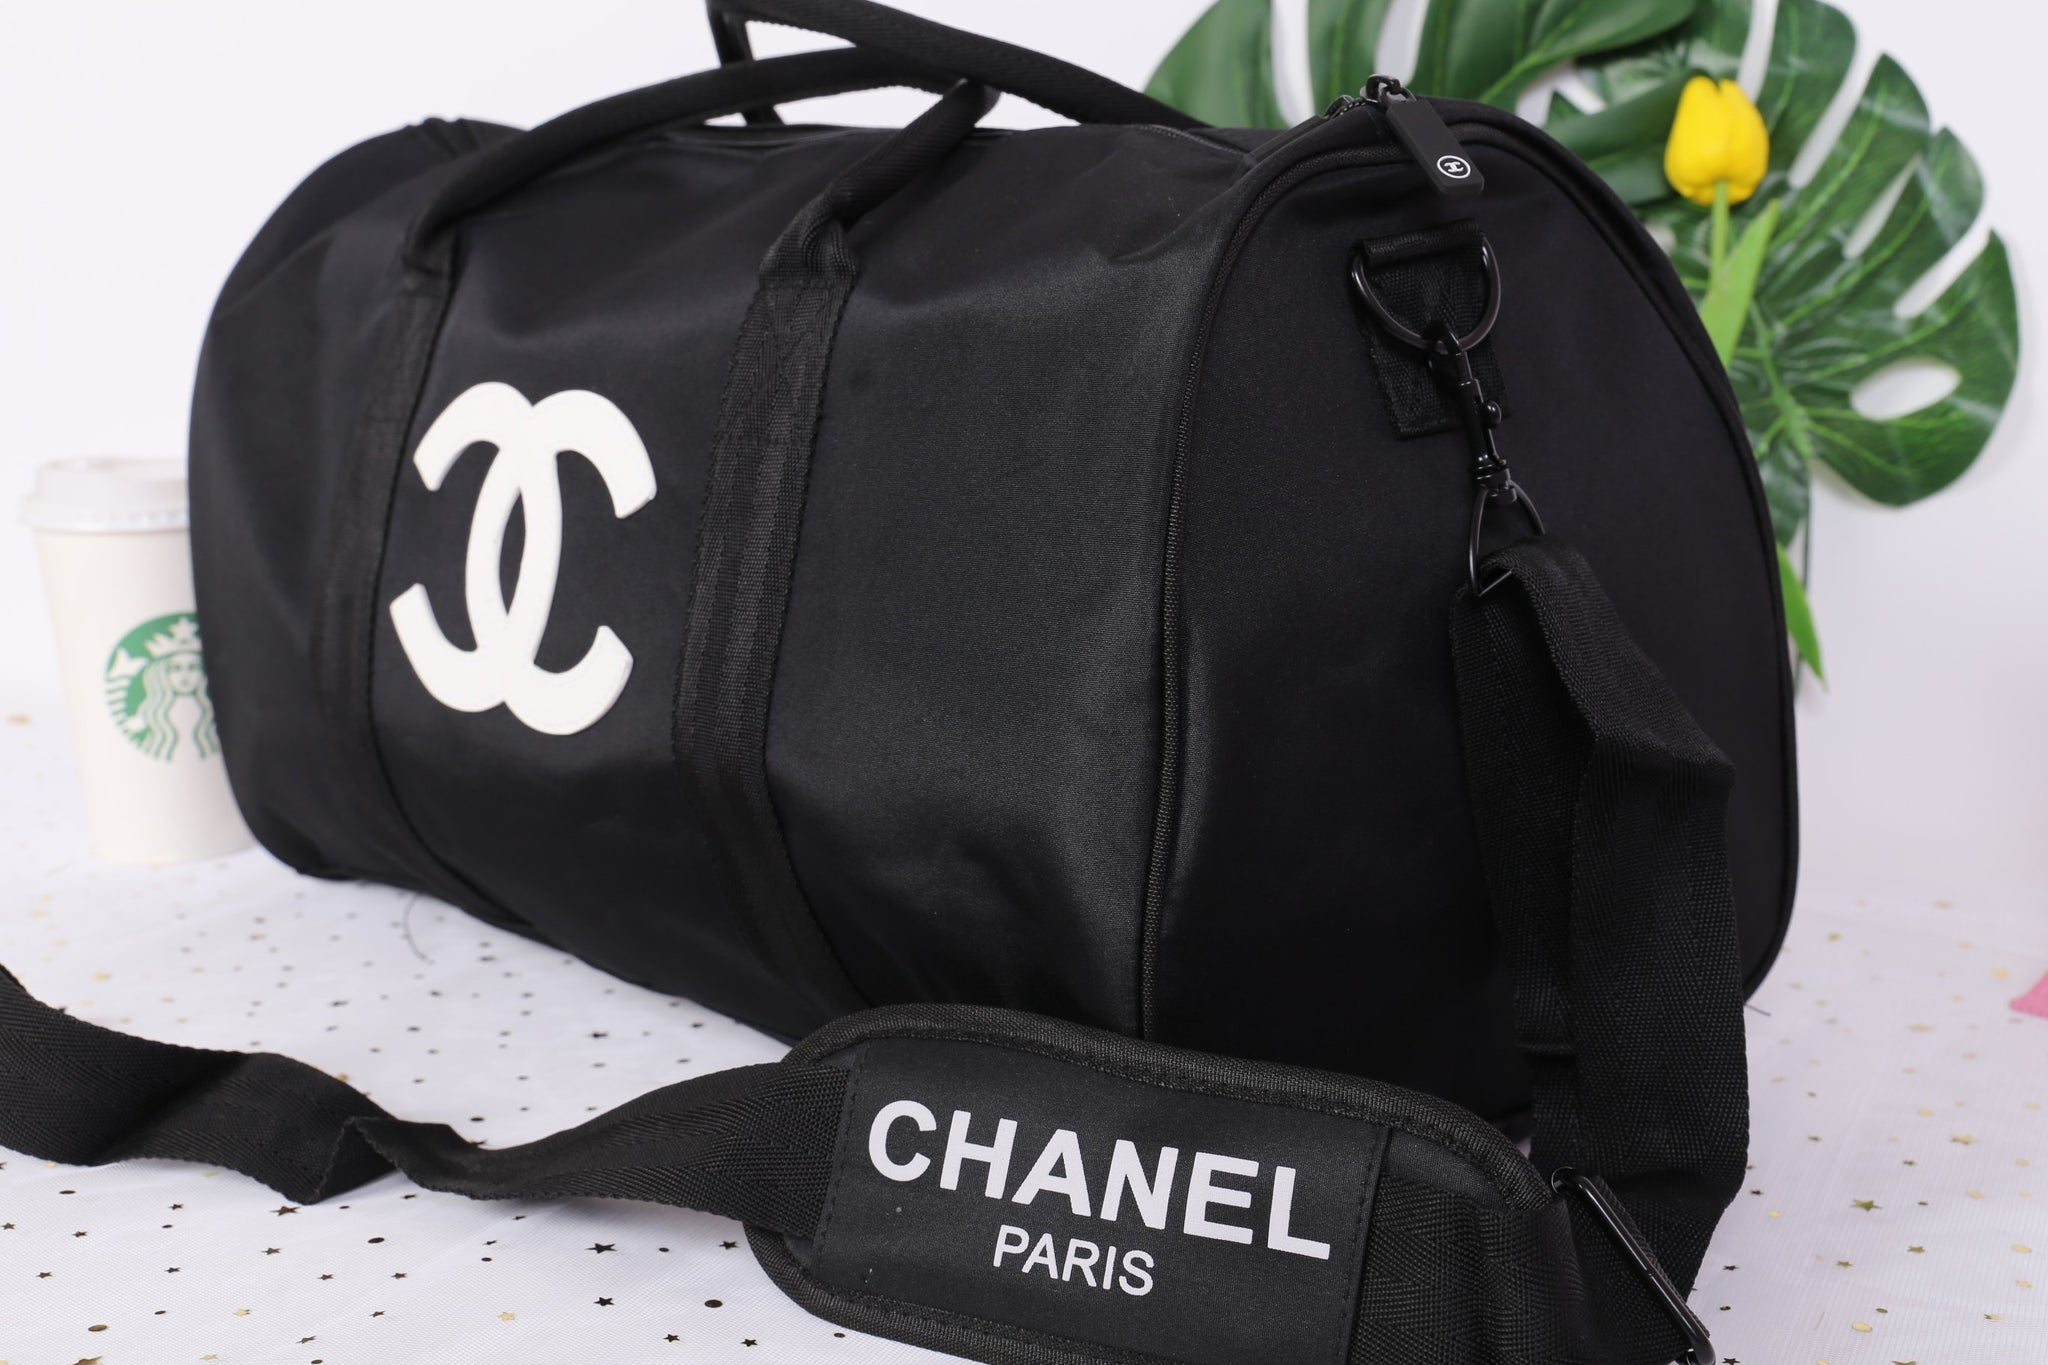 b57d51d994c4 ... Chanel White CC Logo Travel Gym Duffle Weekend Bag Large Vip Gift -  PARTYMOOD ...